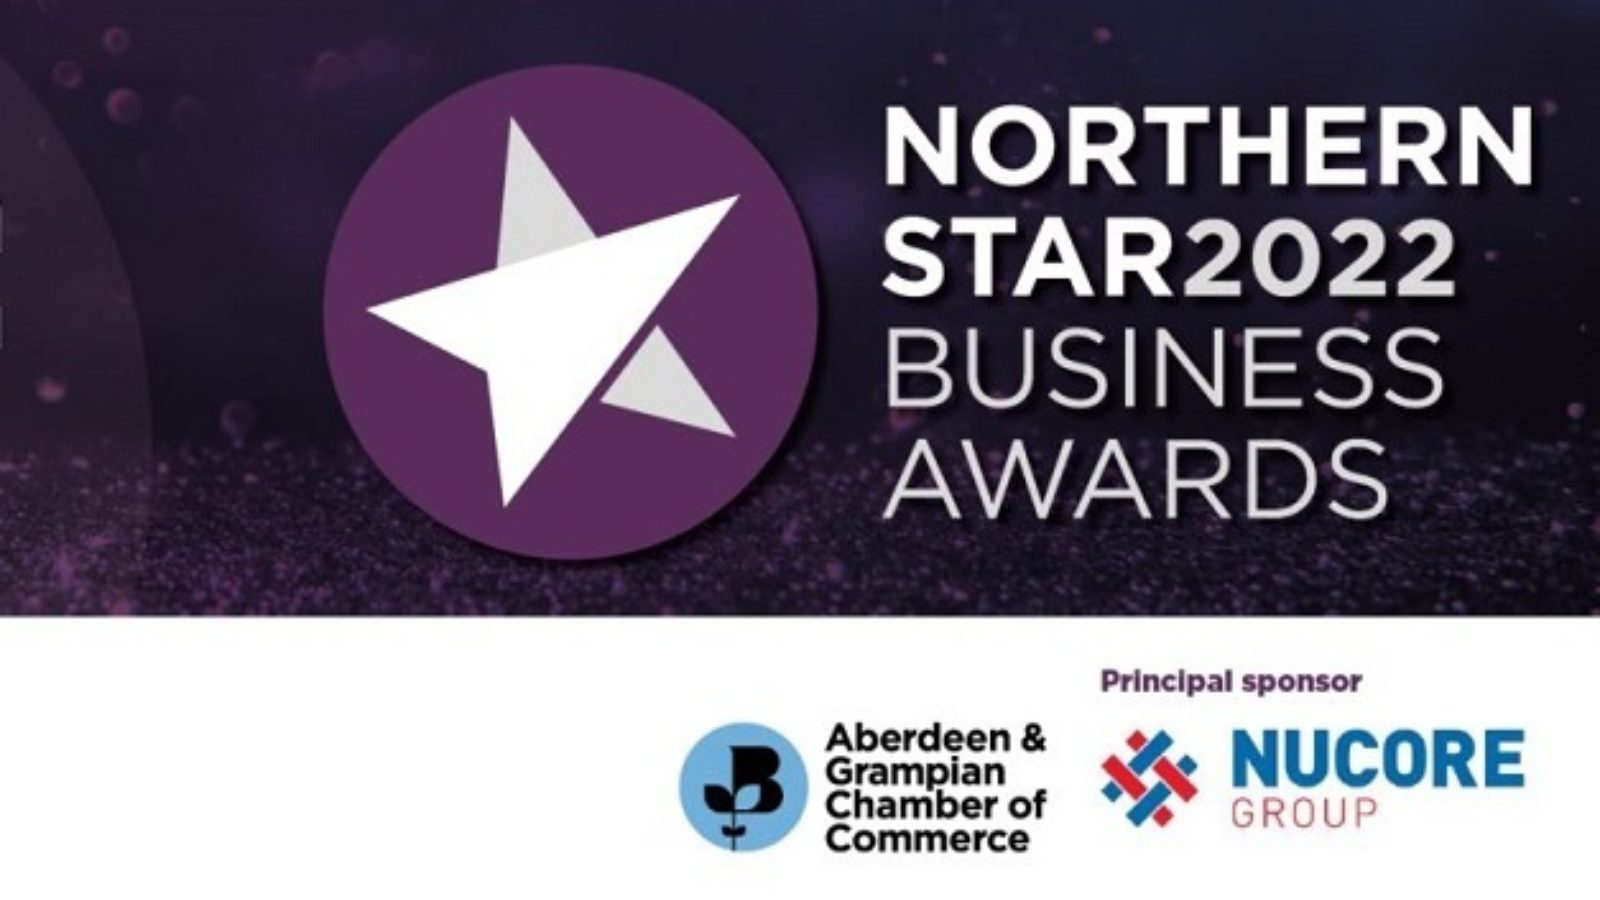 Nominations open for Northern Star Business Awards 2022